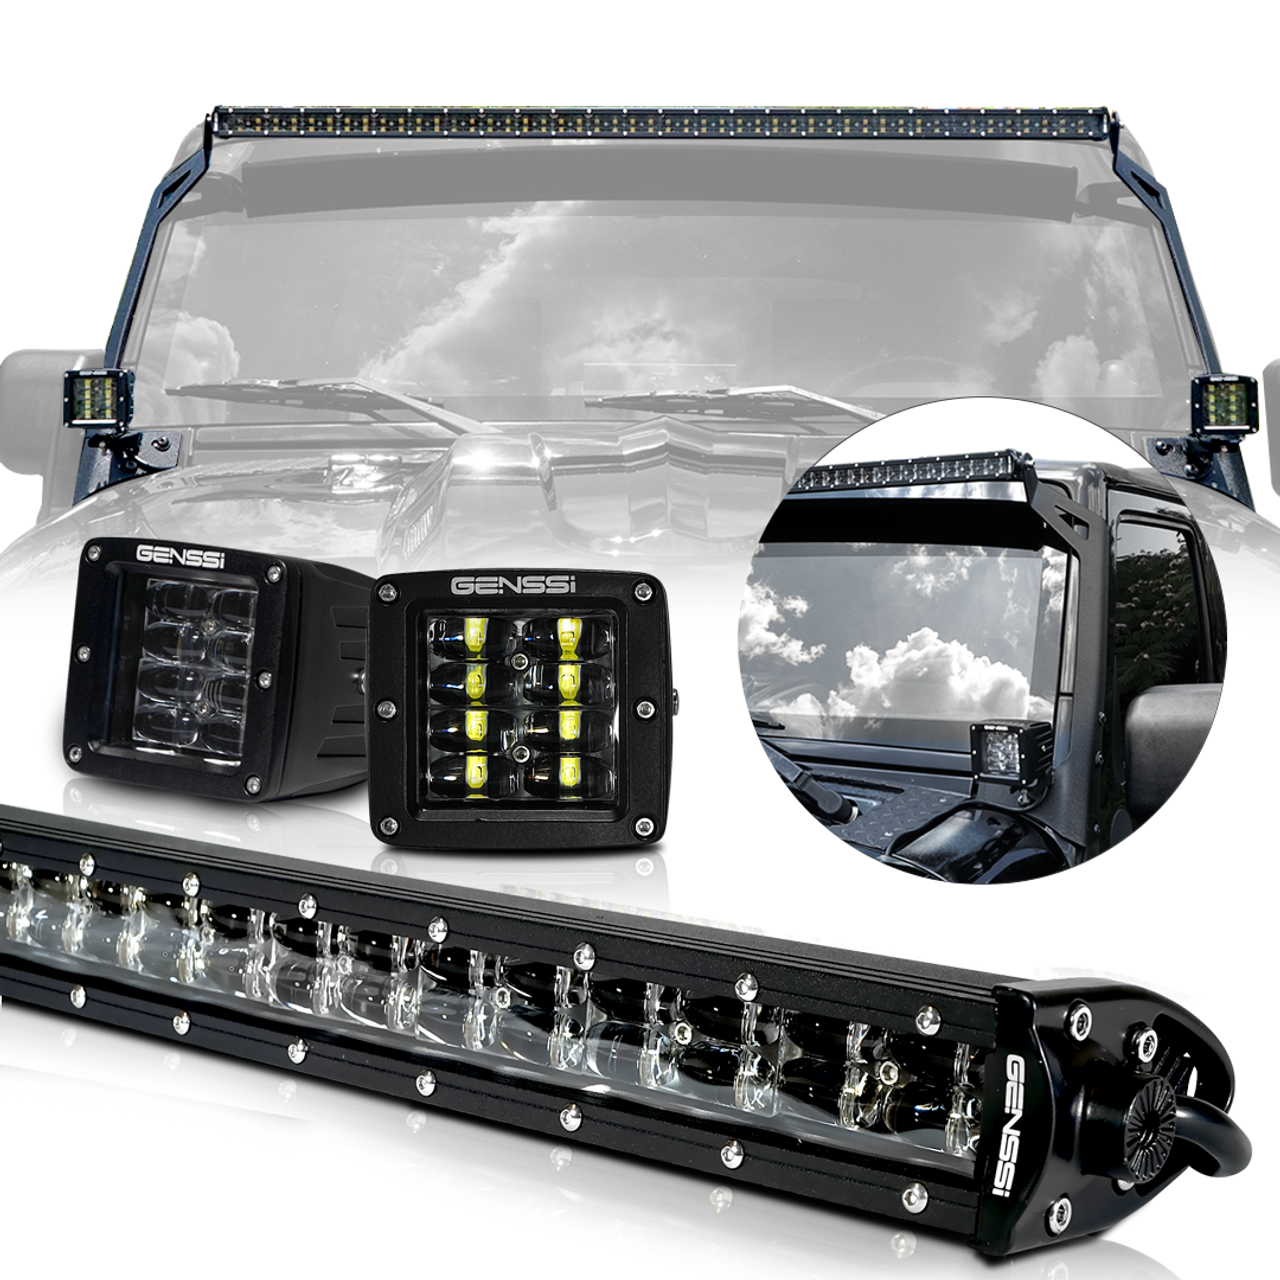 1995 Jeep Wrangler Wiring Harness Diode Diagrams Stereo Kit Led Light Bar Combo With Aux Lights Bracket 90 Radio Diagram